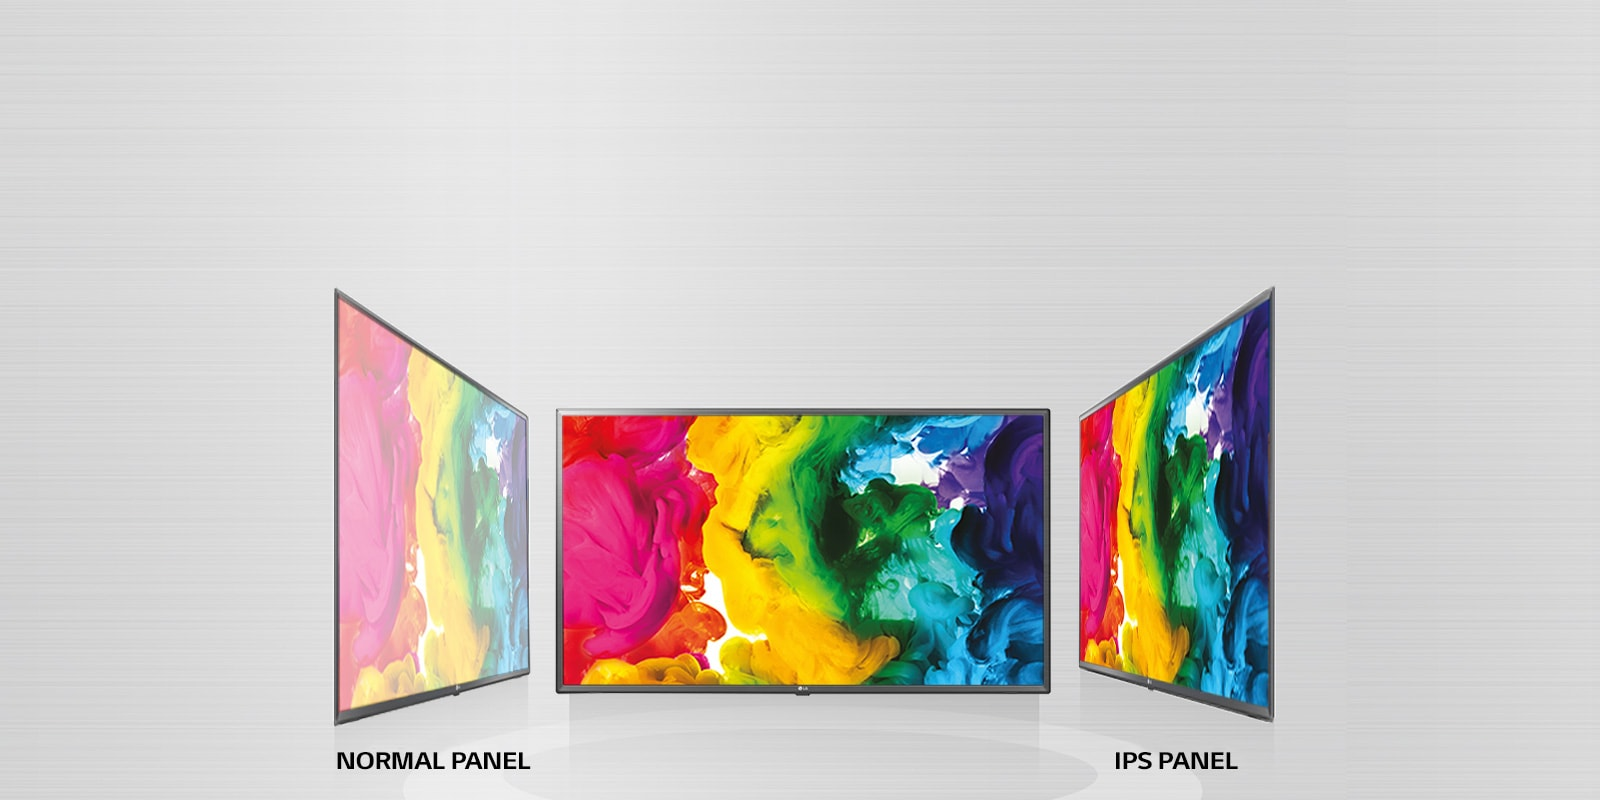 LG IPS Display LED TV